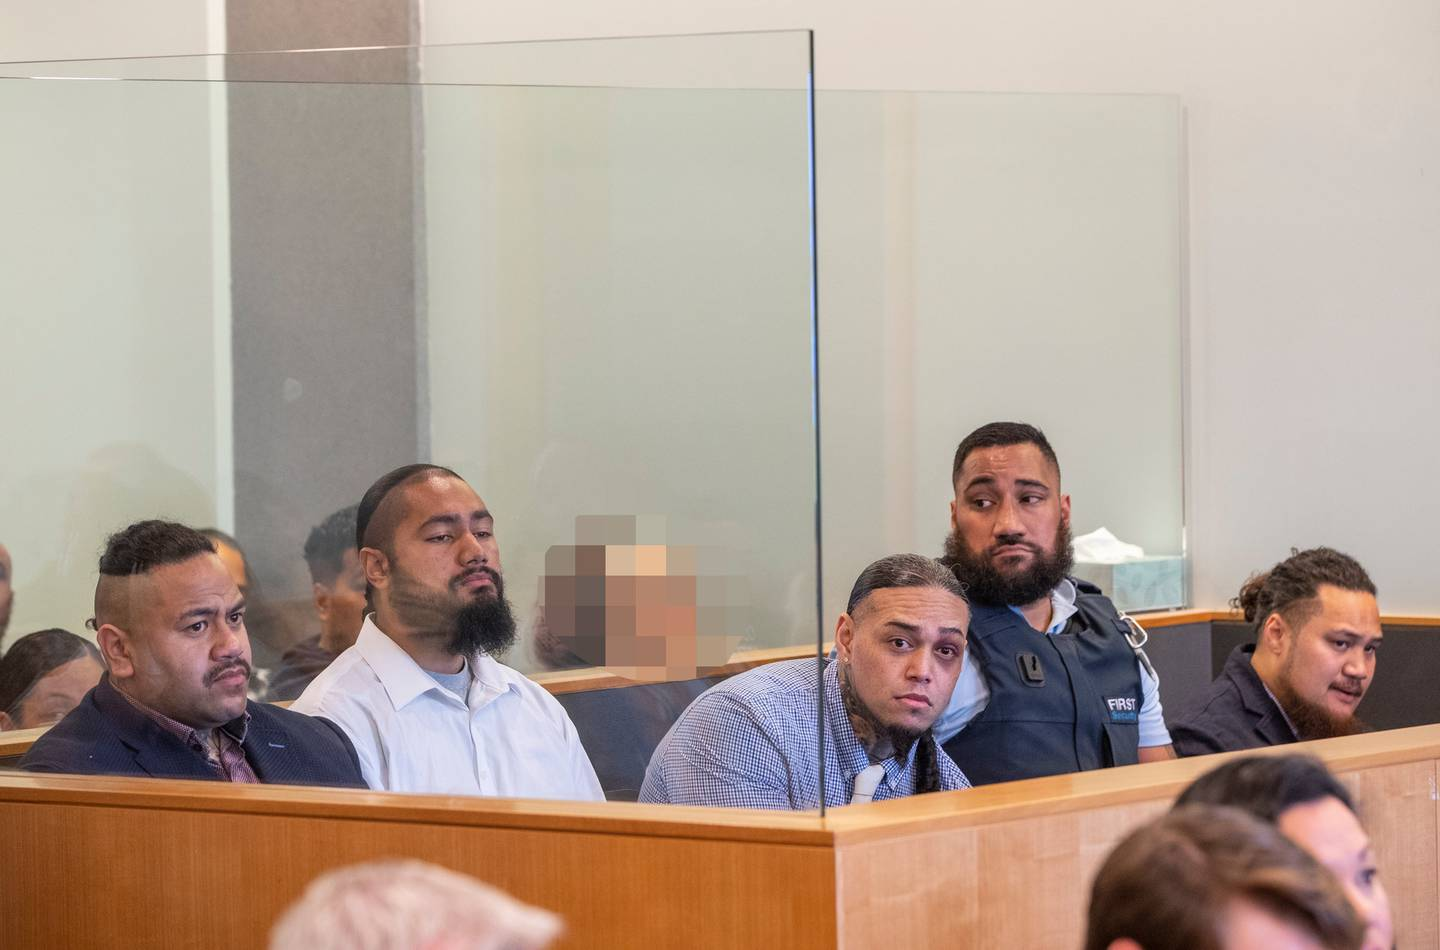 Tevita Fangupo (left), Toni Finau and Tevita Kulu, with Halane Ikiua at the far right, during their sentencing at the Auckland High Court. Photo / Peter Meecham